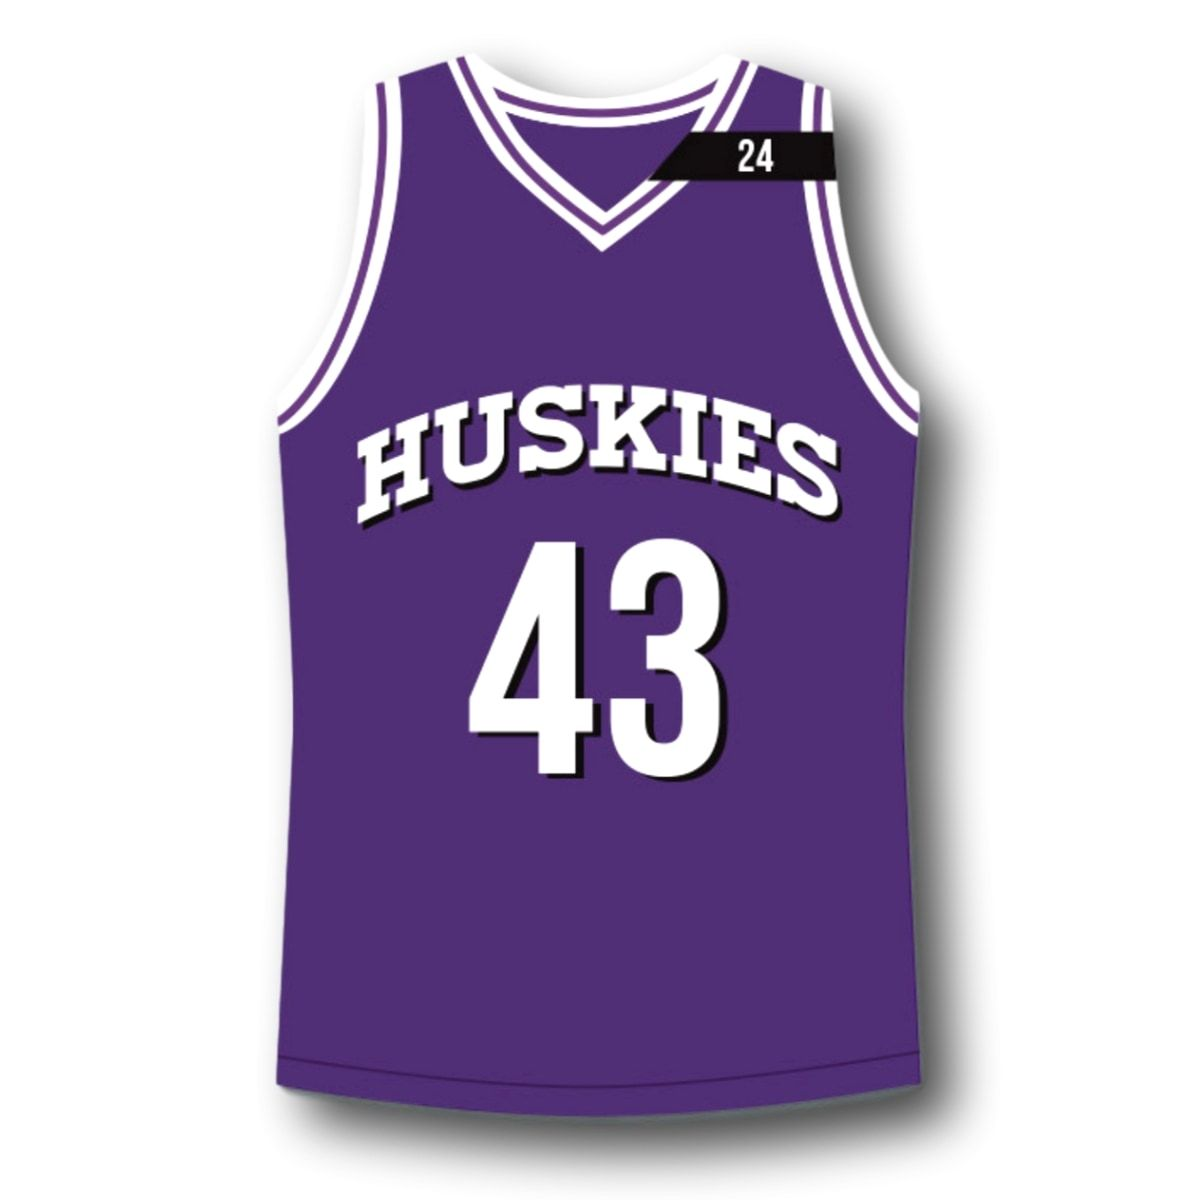 K. Tyler #43 Huskies The 6th Man Basketball Jersey Purple Any Size